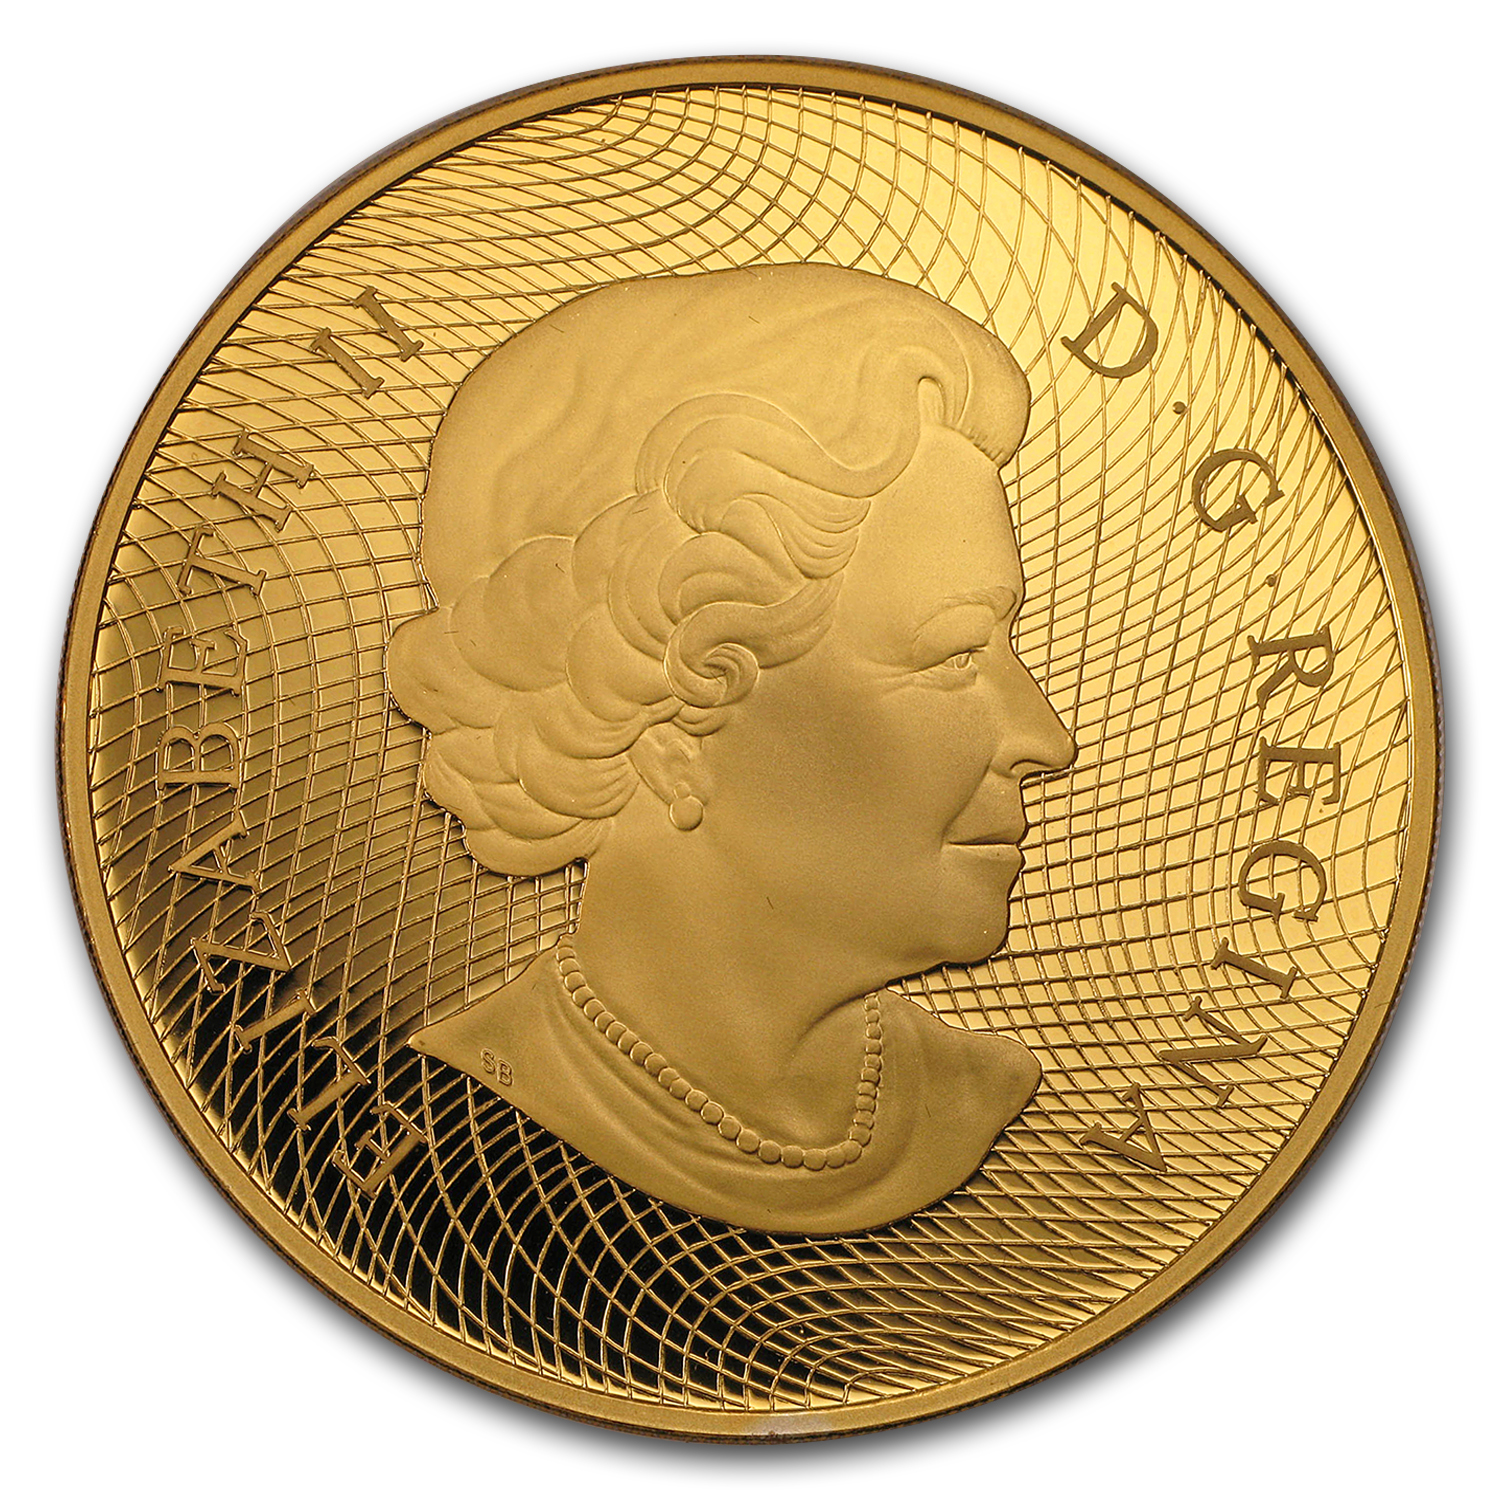 2006 Canada Proof Gold $300 Shinplaster